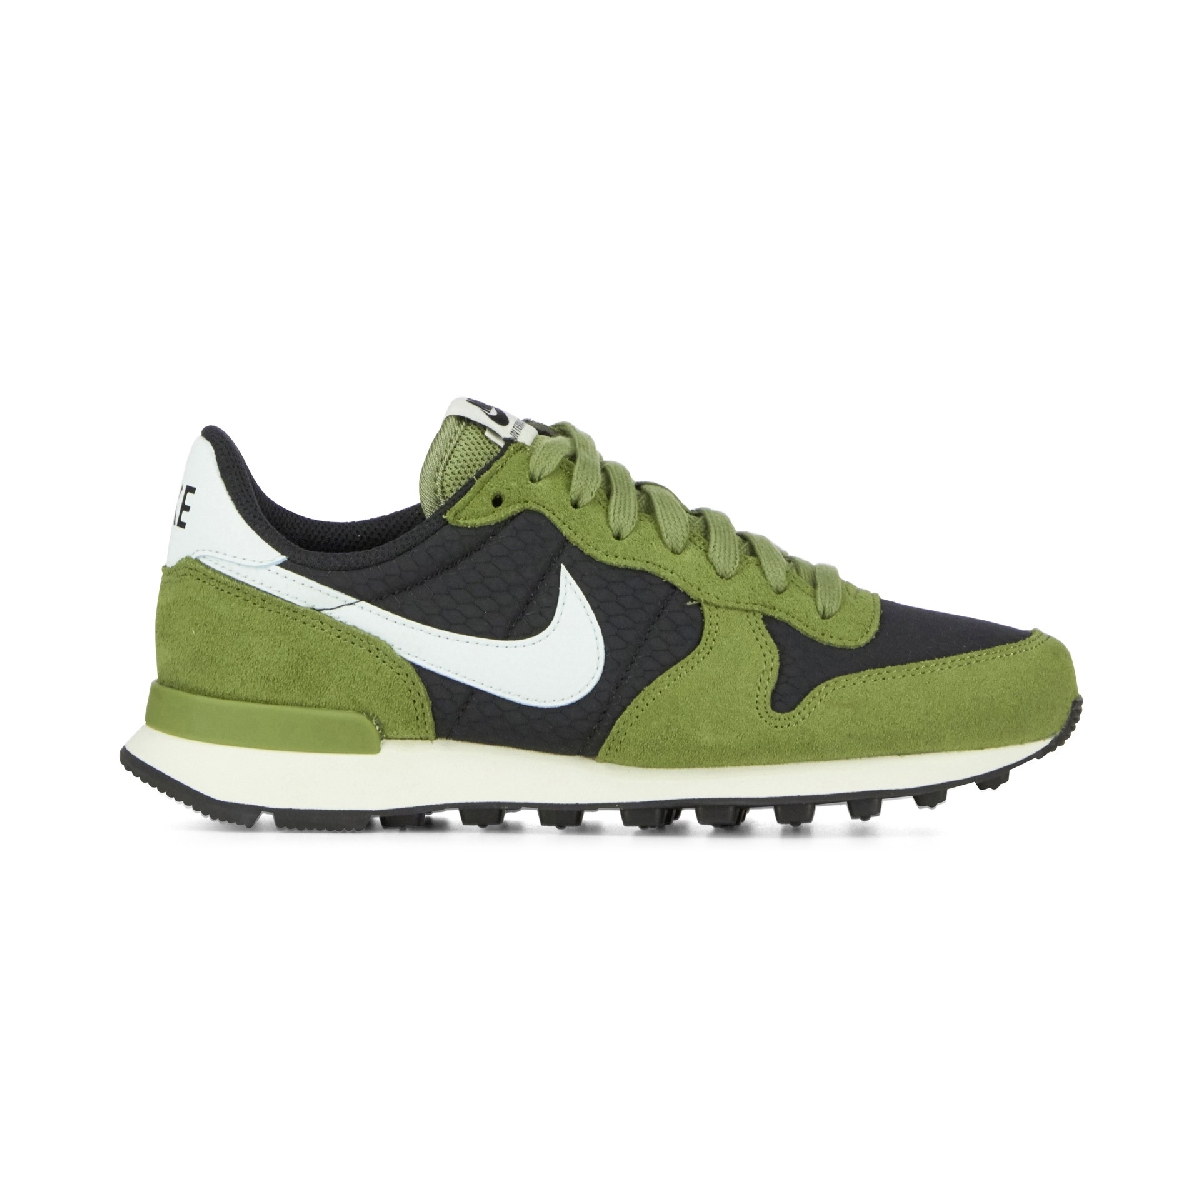 2019 nike internationalist femme en france 207